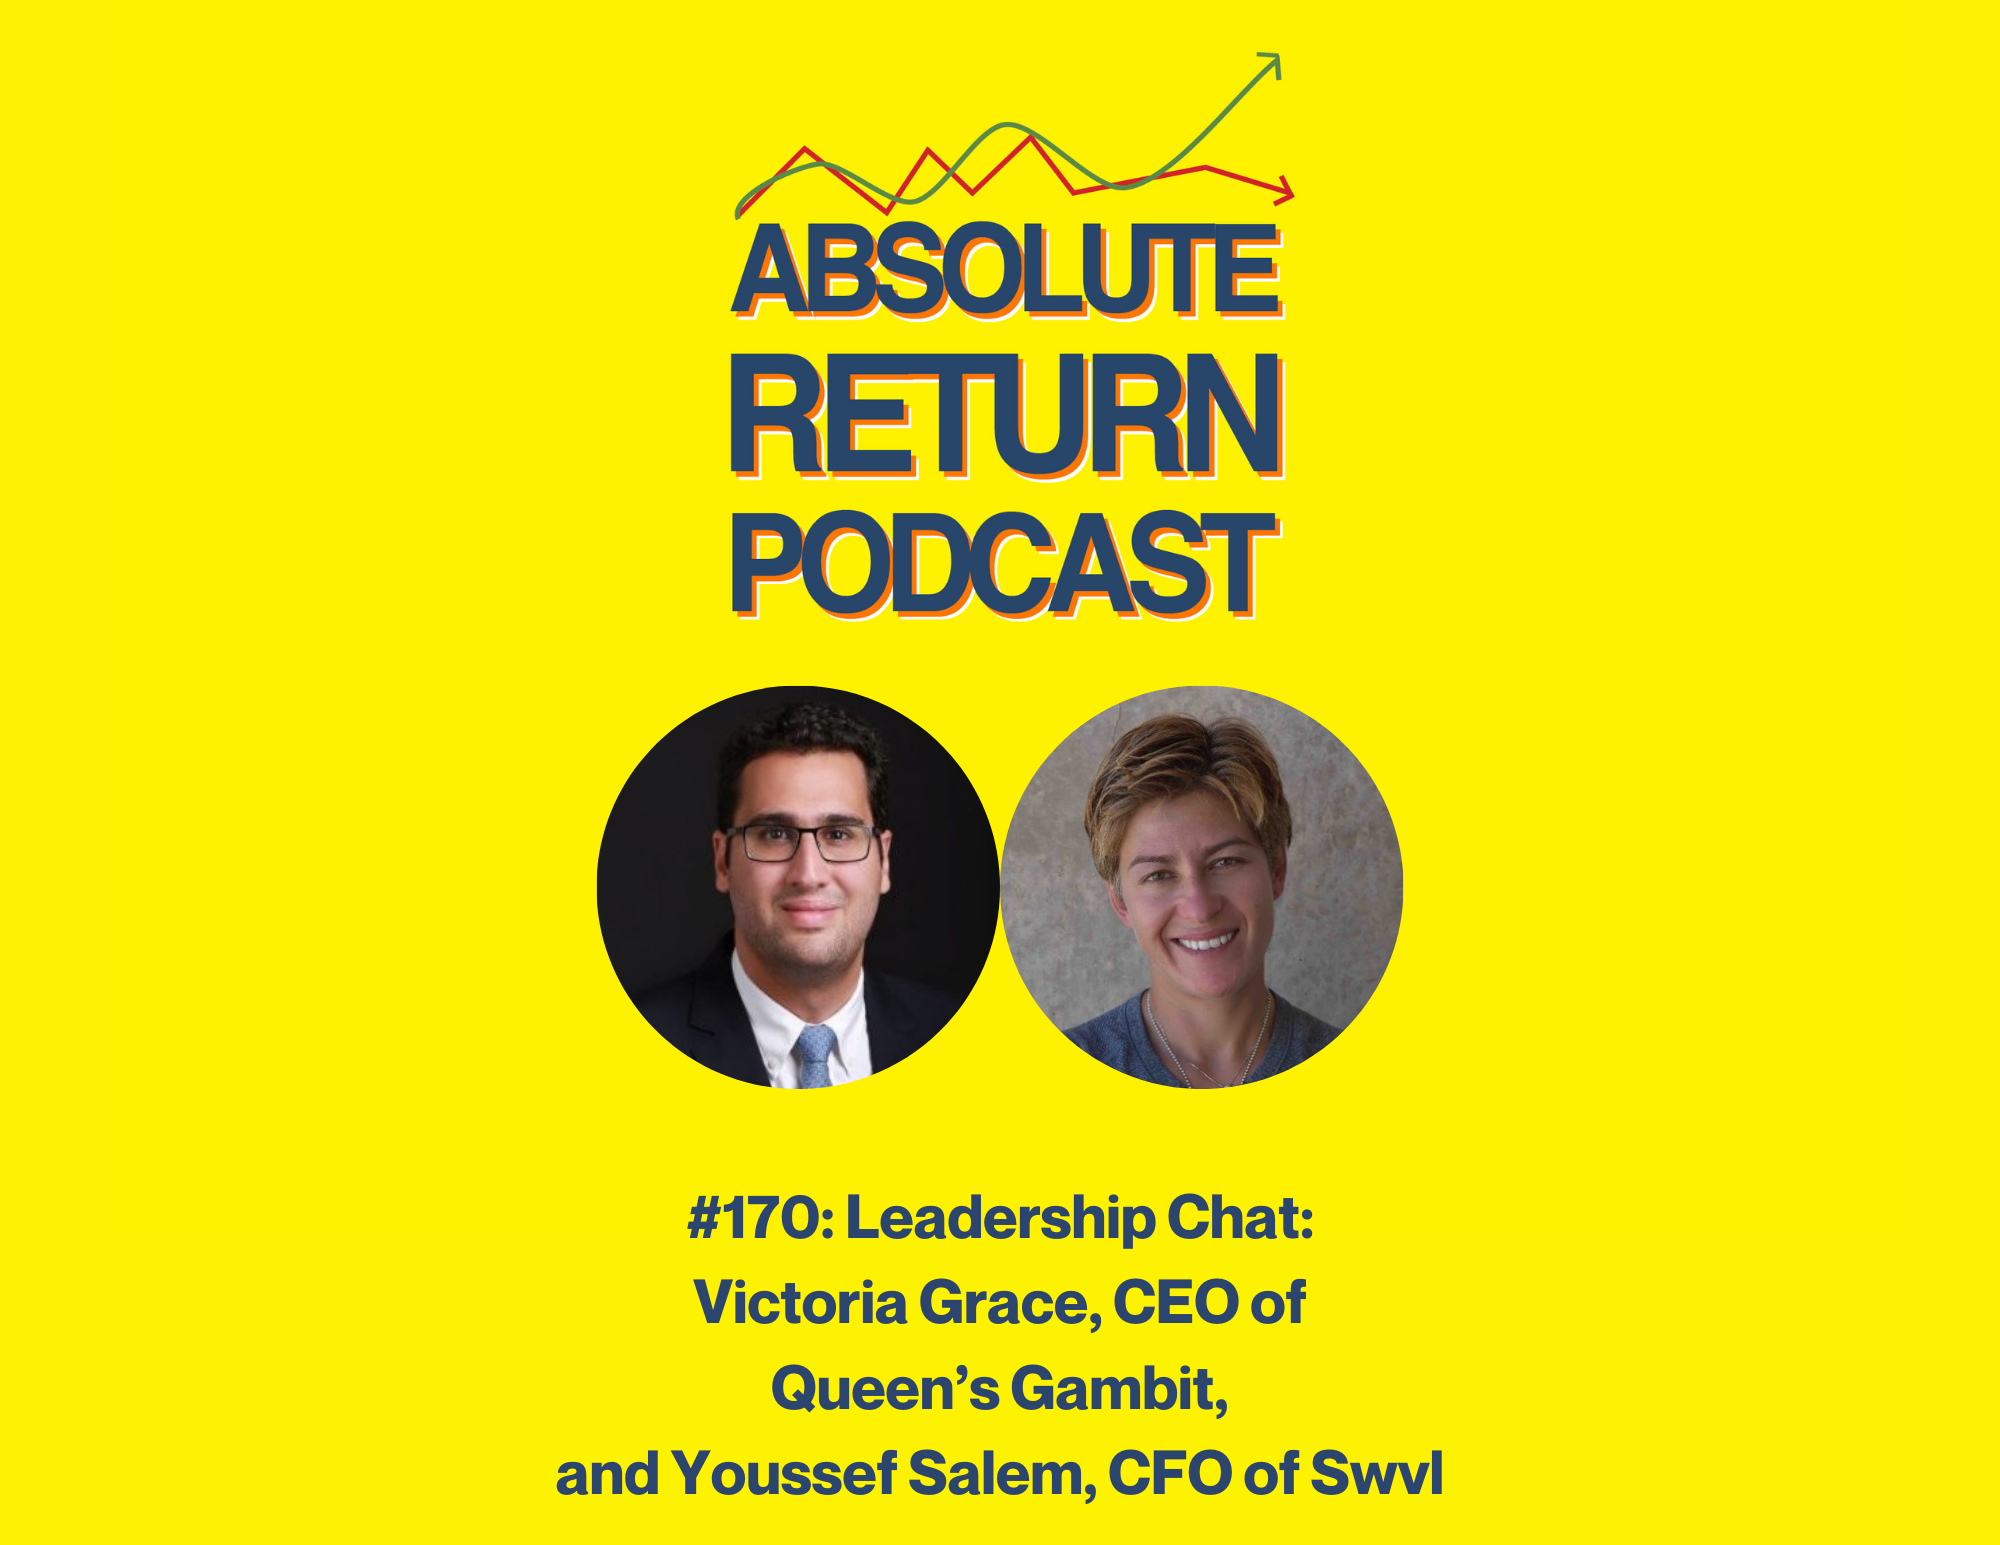 Absolute Return Podcast #170: Leadership Chat: Victoria Grace, CEO of Queen's Gambit, and Youssef Salem, CFO of Swvl